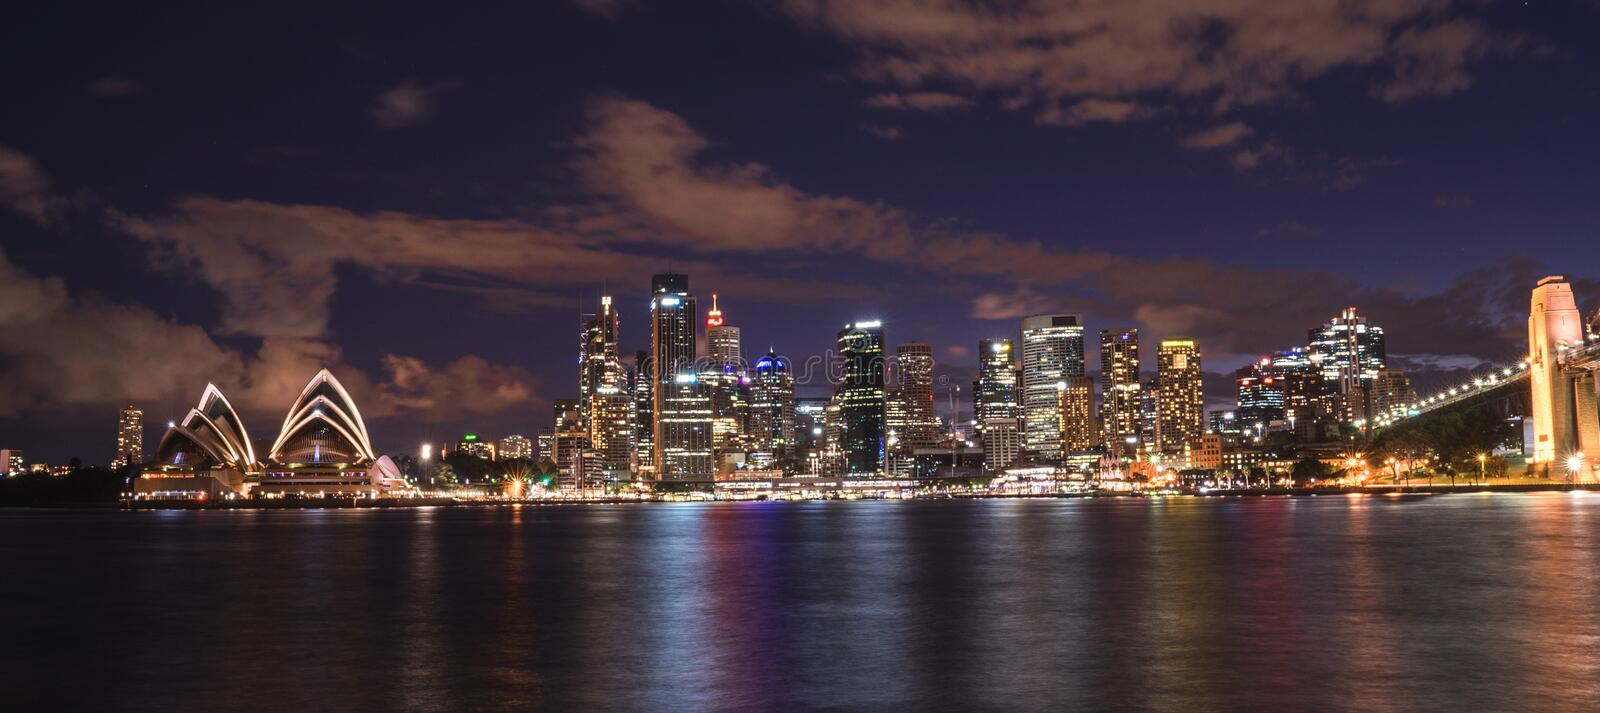 The Iconic Landscape of illuminated Sydney city and Opera House. At night with cloudy sky, view from Kirribilli. The liveable night city. Australia:04/02/18 stock photography